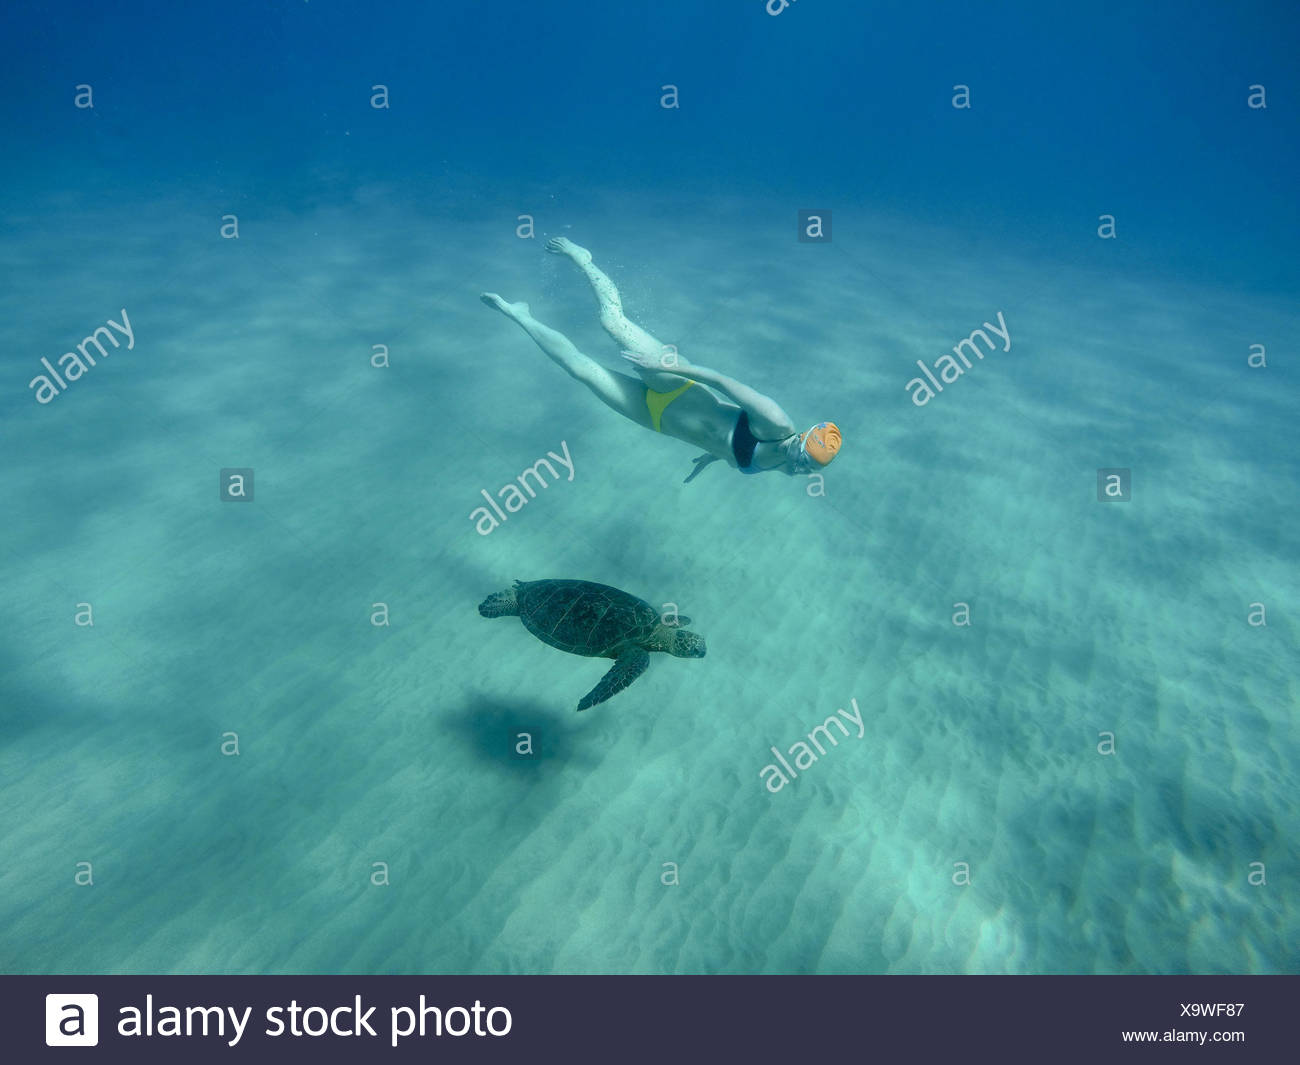 A woman in a yellow and blue bikini swims underwater with a pacific green turtle. - Stock Image